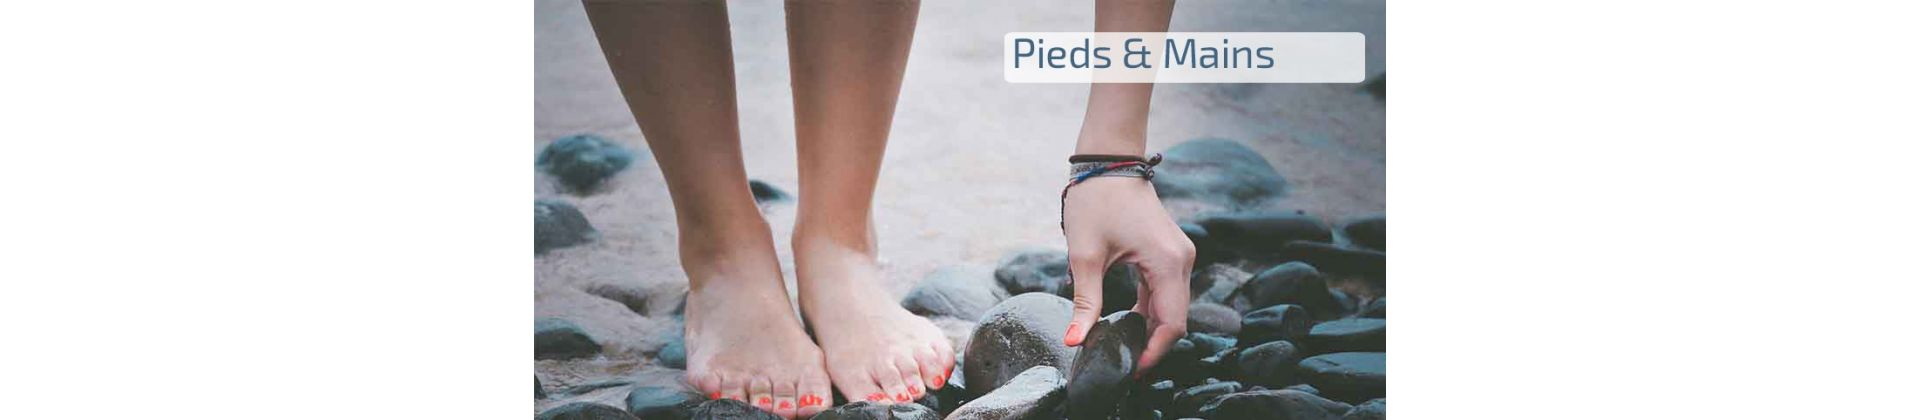 39 - Soins Pieds & Mains